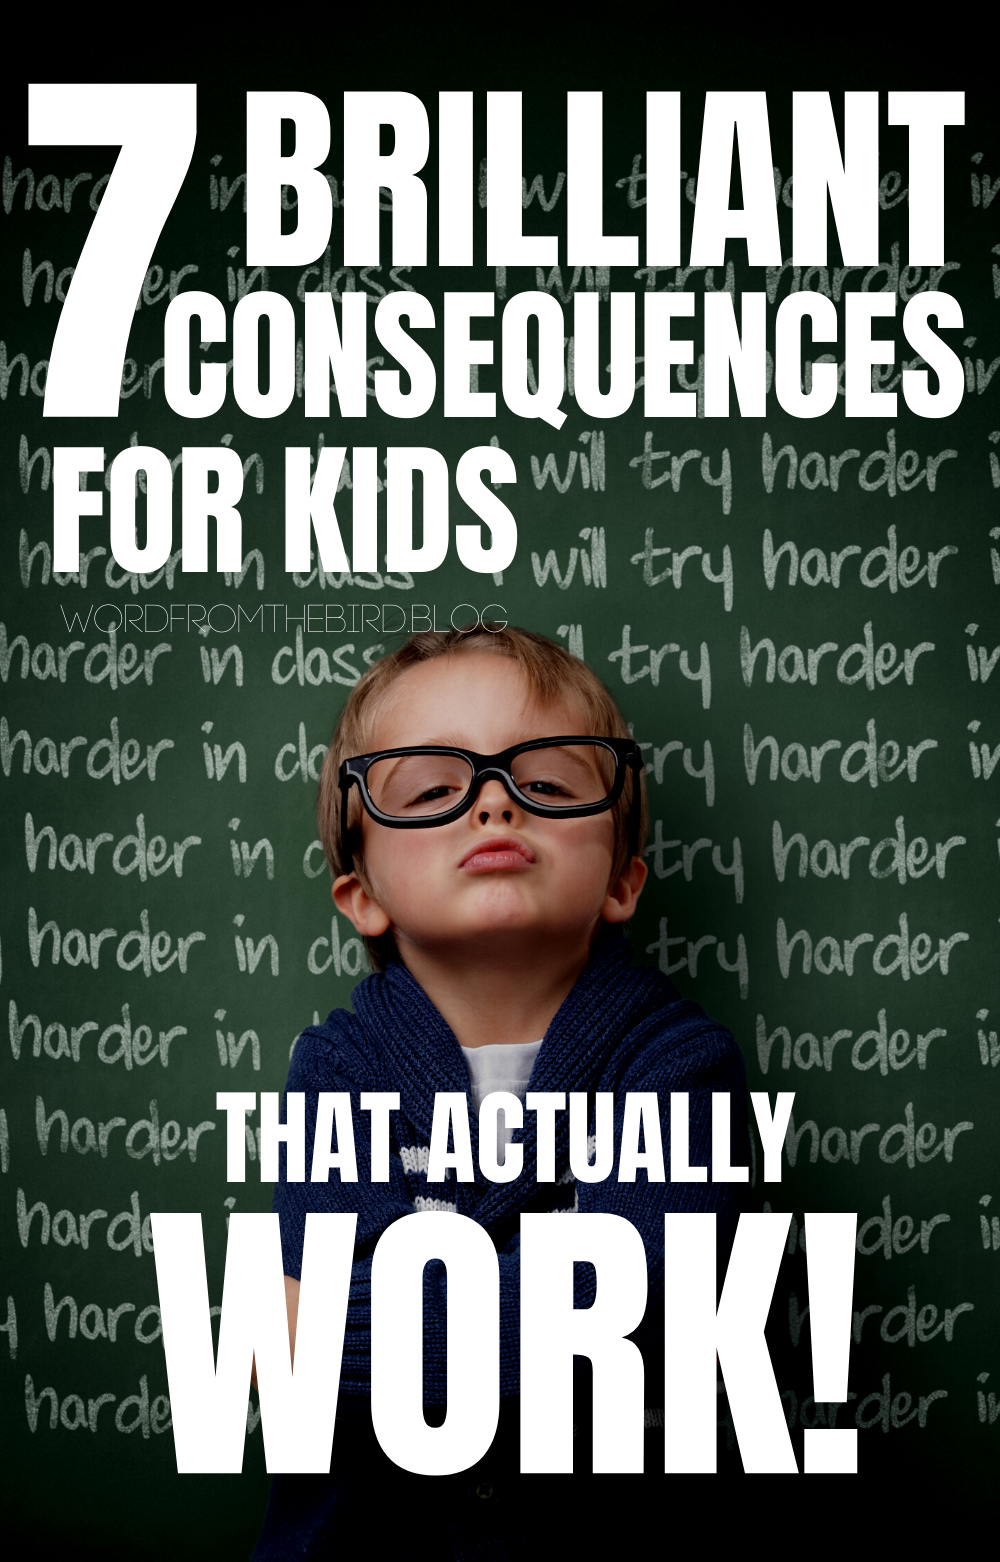 Photo of 7 Effective Consequence Ideas That Prepare Kids for the Real World-Word From The Bird